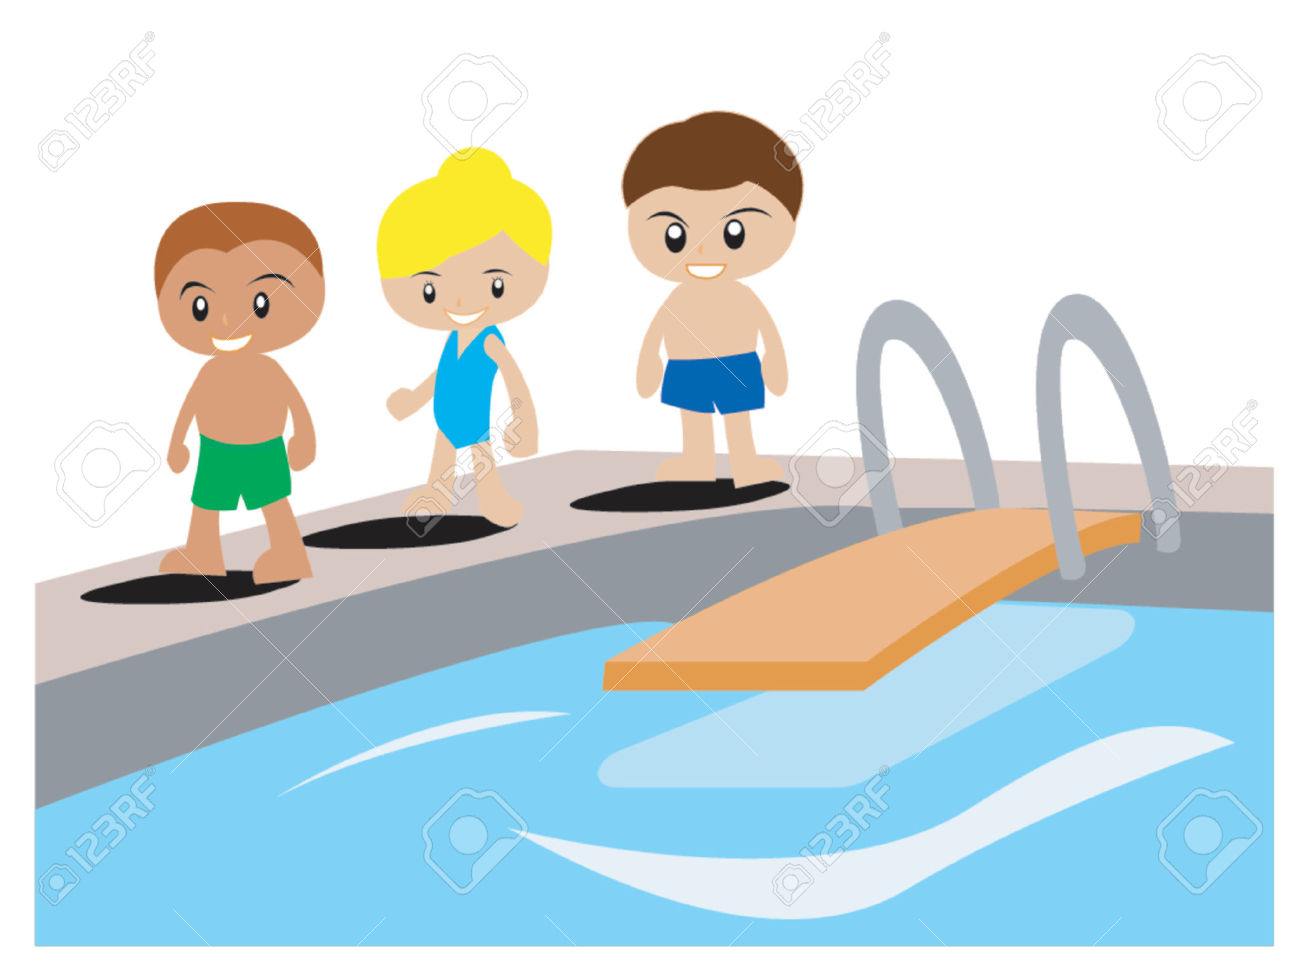 Boys swimming pool clipart